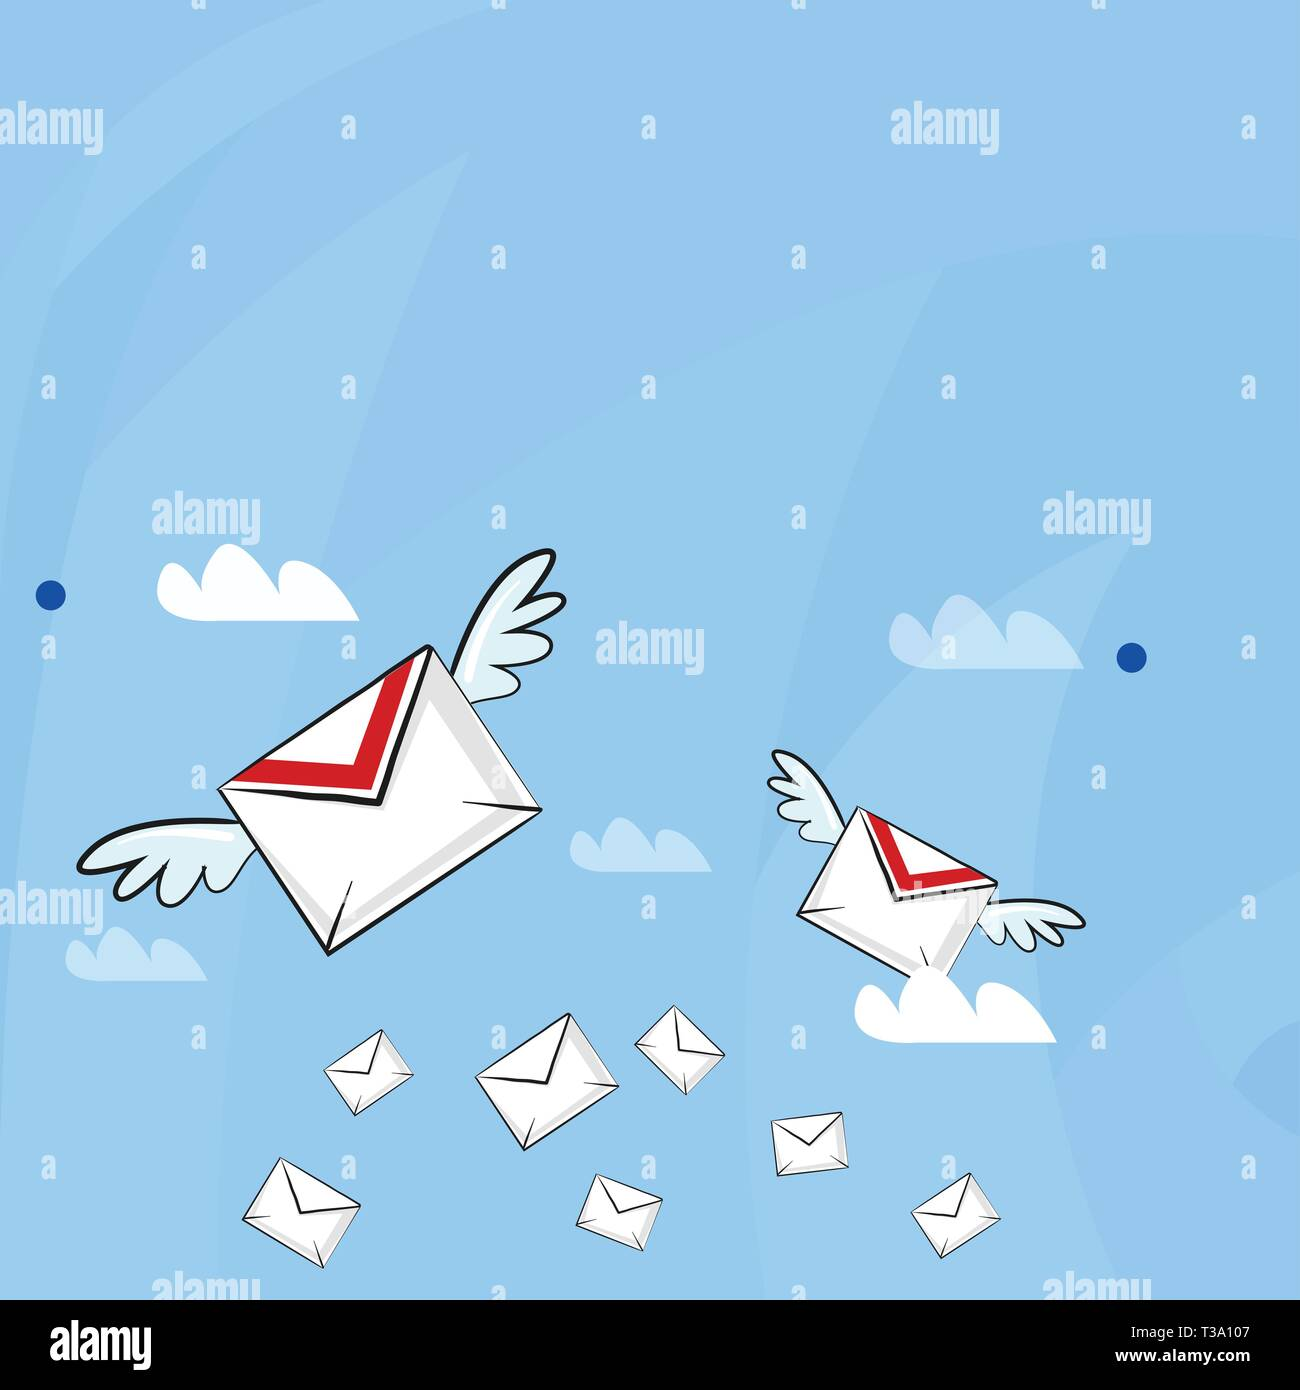 Many Colorful Airmail Flying Letter Envelopes And Two Of Them With